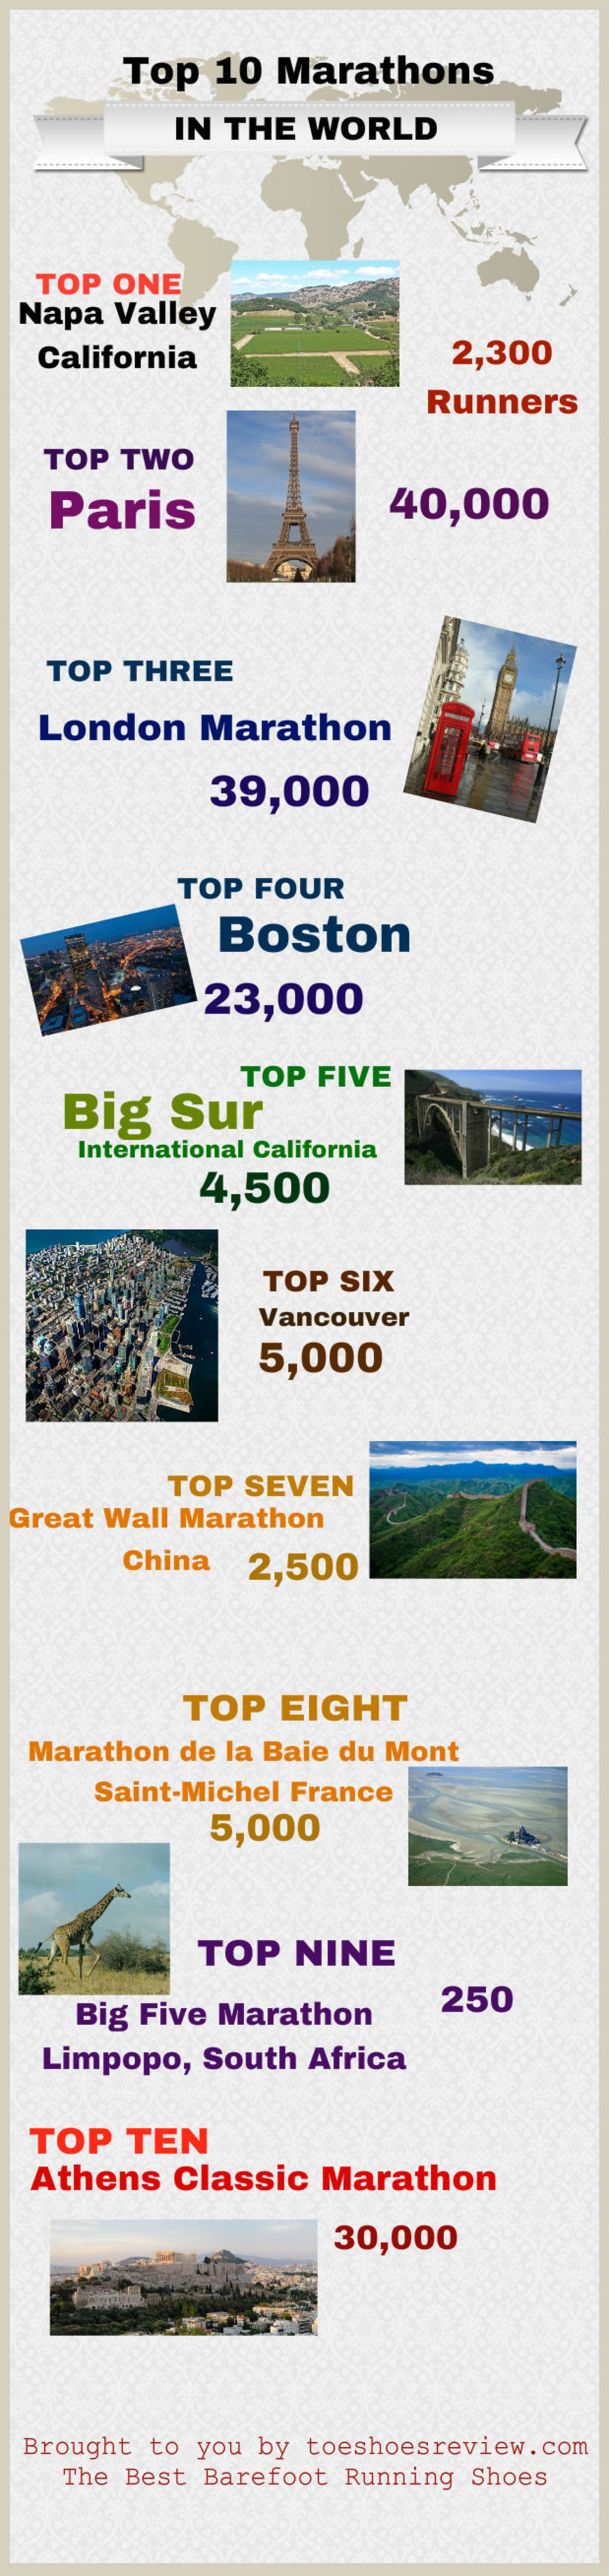 Top 10 Marathons Worth Traveling For. Infographic